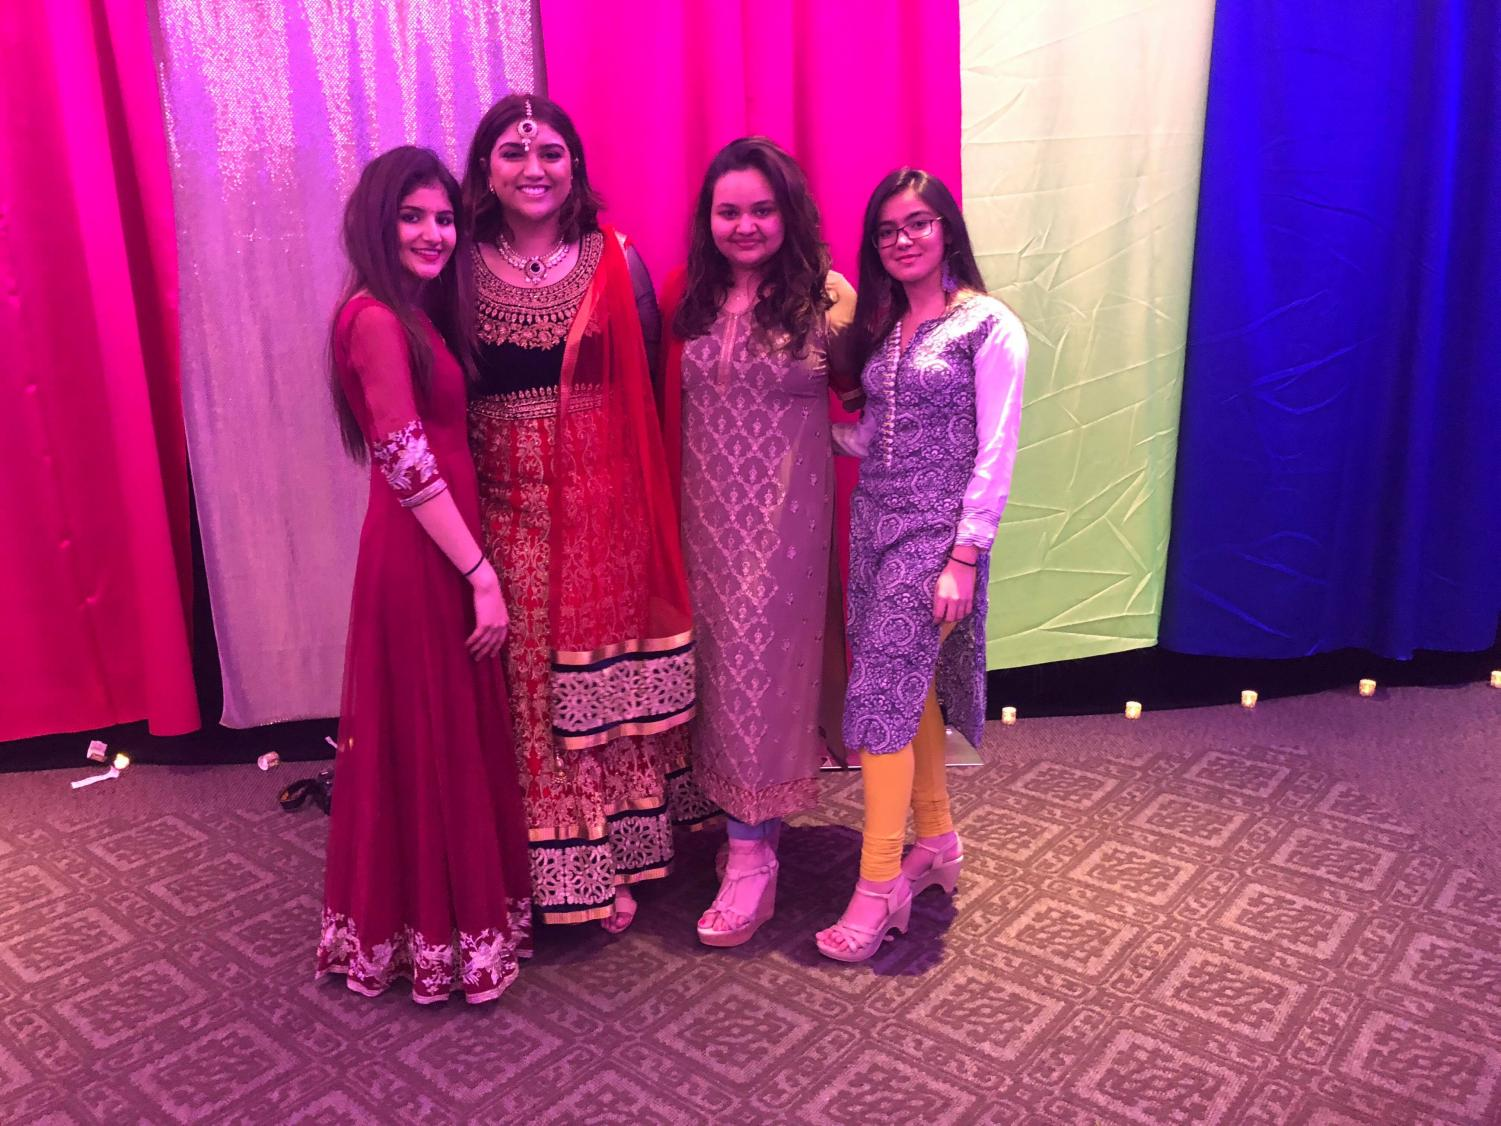 (left to right) Navya Rajoria, Treasurer; Tohfa Phonsia, President; Arushi Chauhan, Vice President; Dhwani Chheda, Secretary